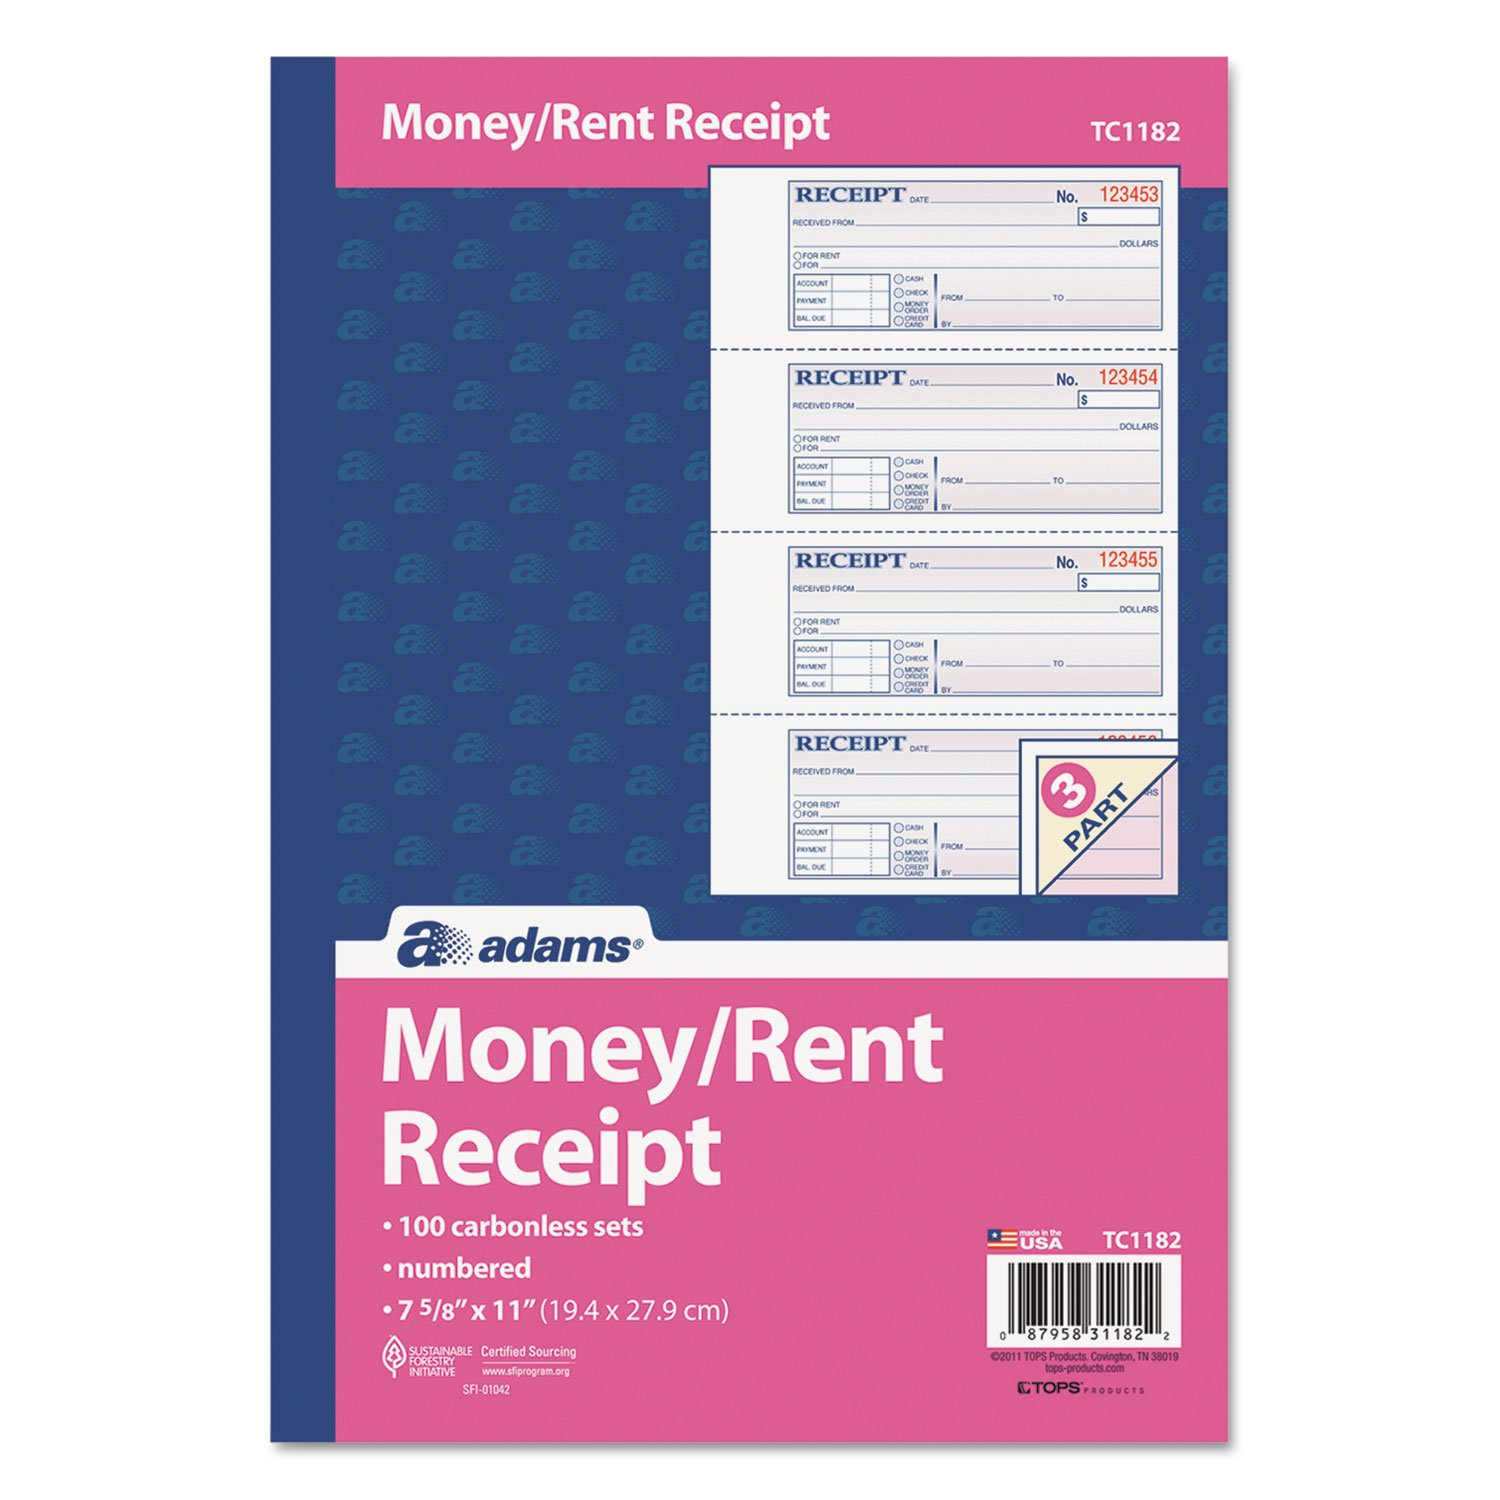 Adams(R) Carbonless 3-Part Money Rent Receipt Book, 7 5 8in. x 11in., Book Of 100 Sets by Cardinal